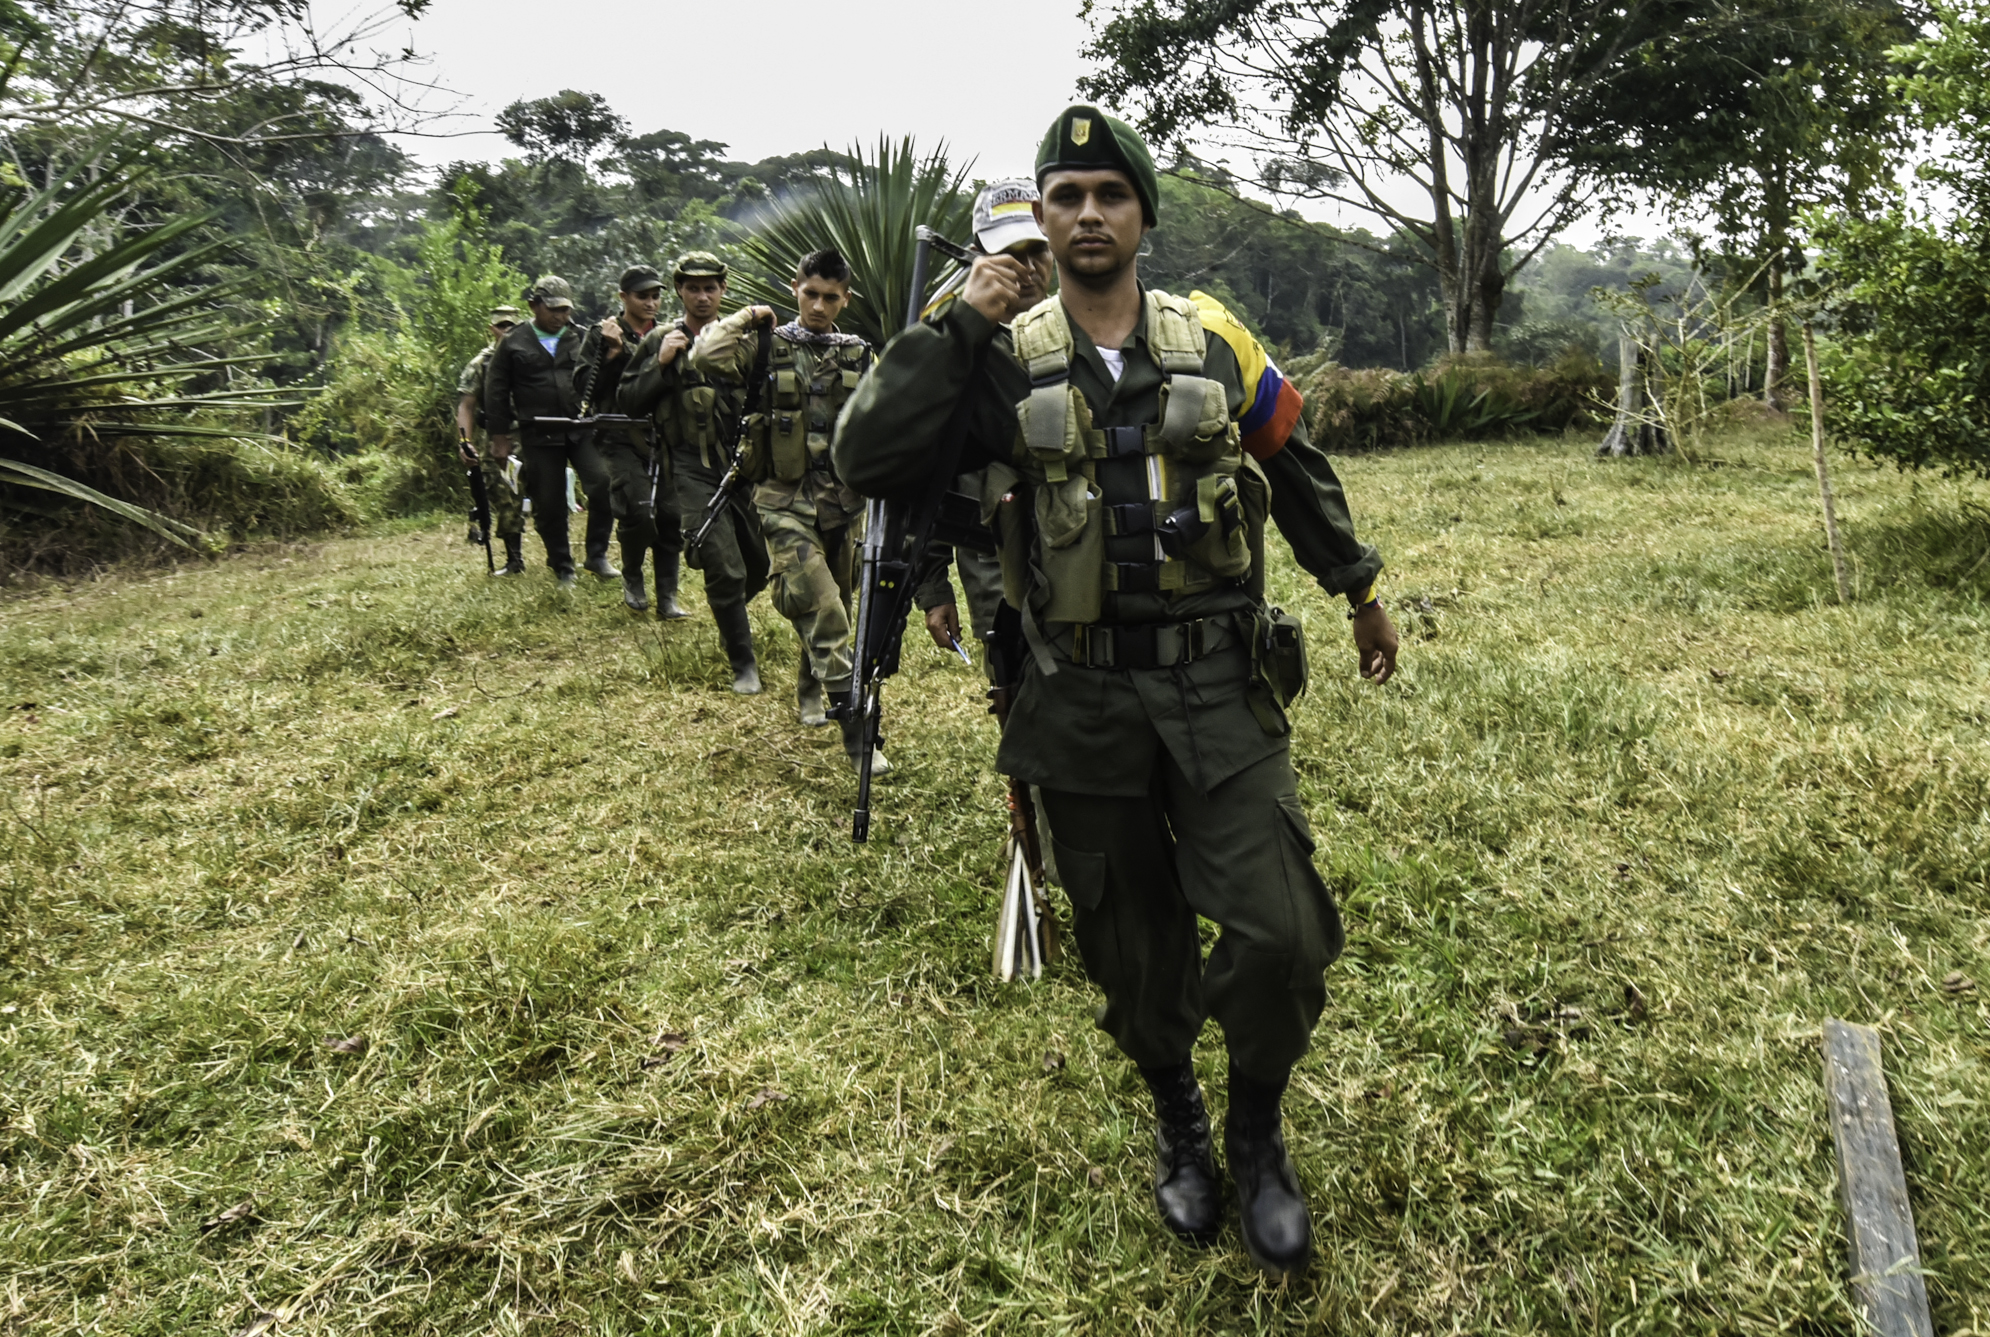 Revolutionary Armed Forces of Colombia (FARC) members patrol a camp in the Magdalena Medio region, Antioquia department, Colombia on February 18, 2016.